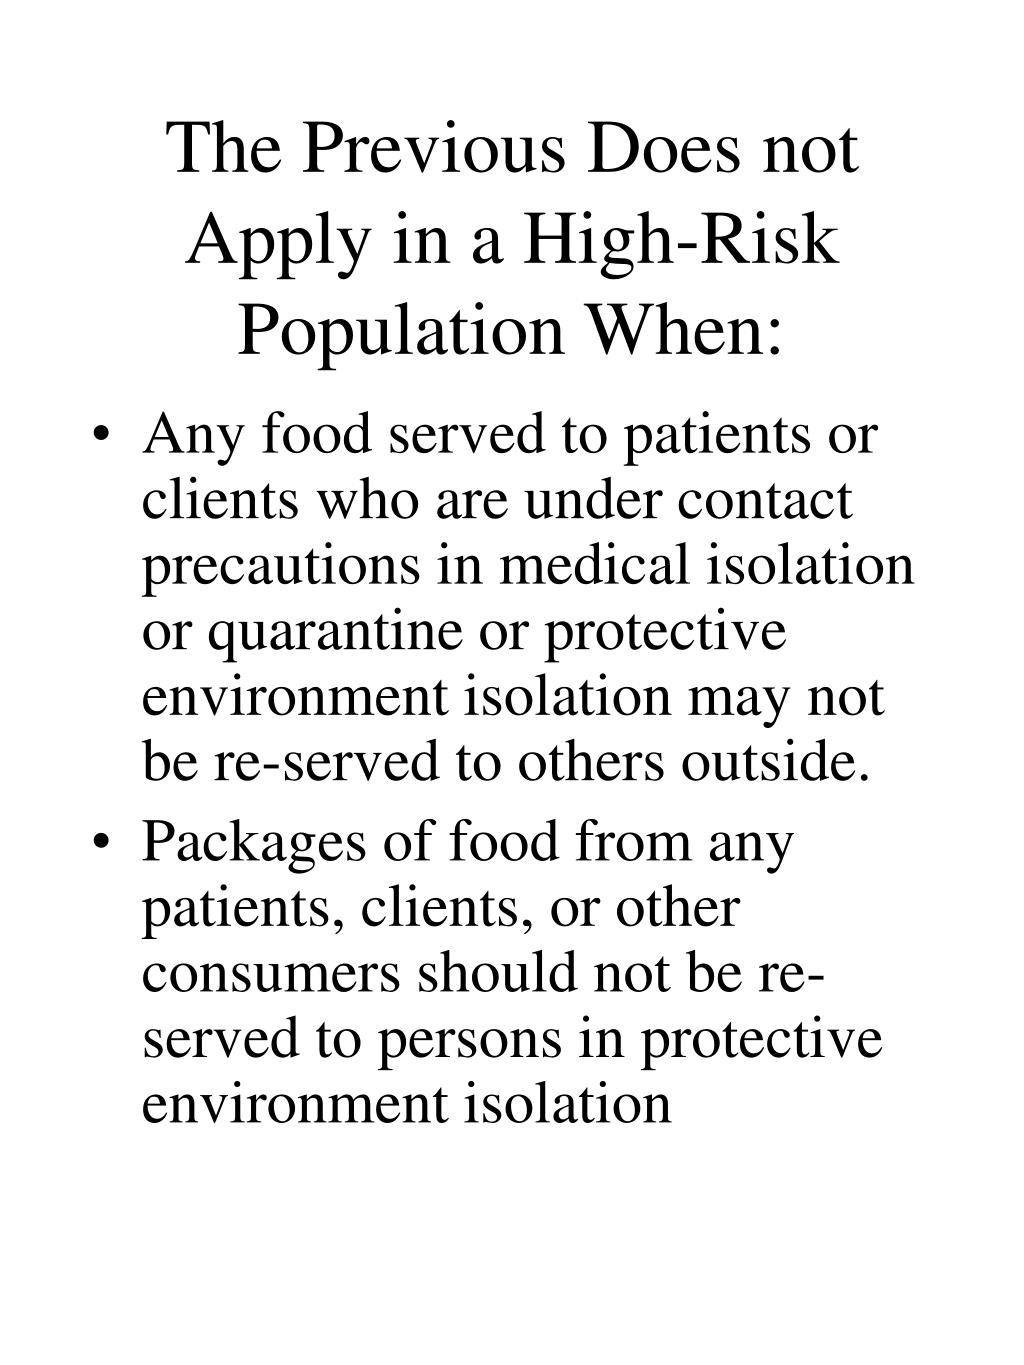 The Previous Does not Apply in a High-Risk Population When: